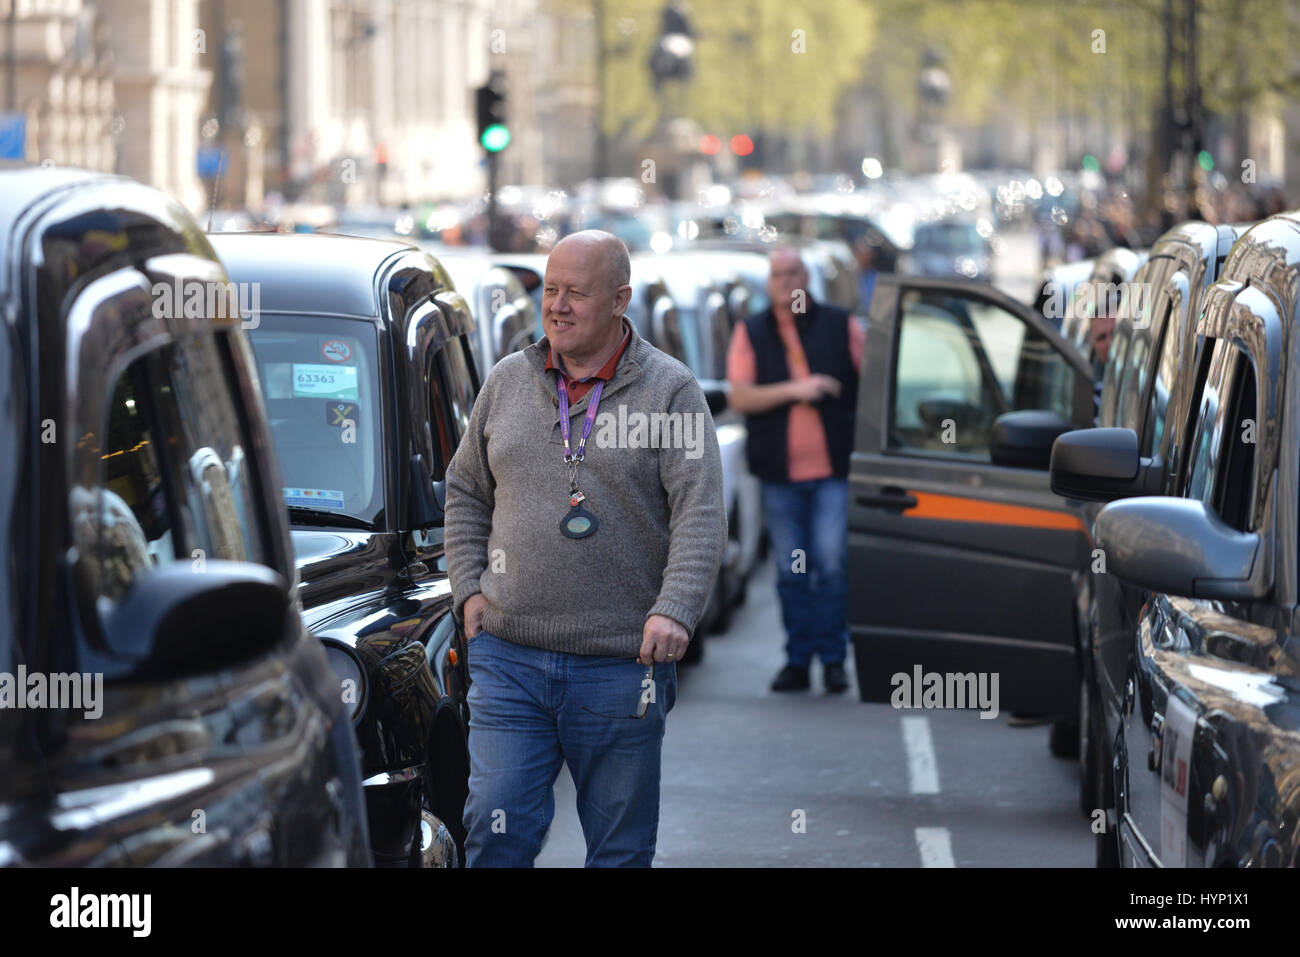 Westminster, London, UK. 6th April 2017. London cab drivers stage a demonstration in Westminster over Uber. Credit: Stock Photo